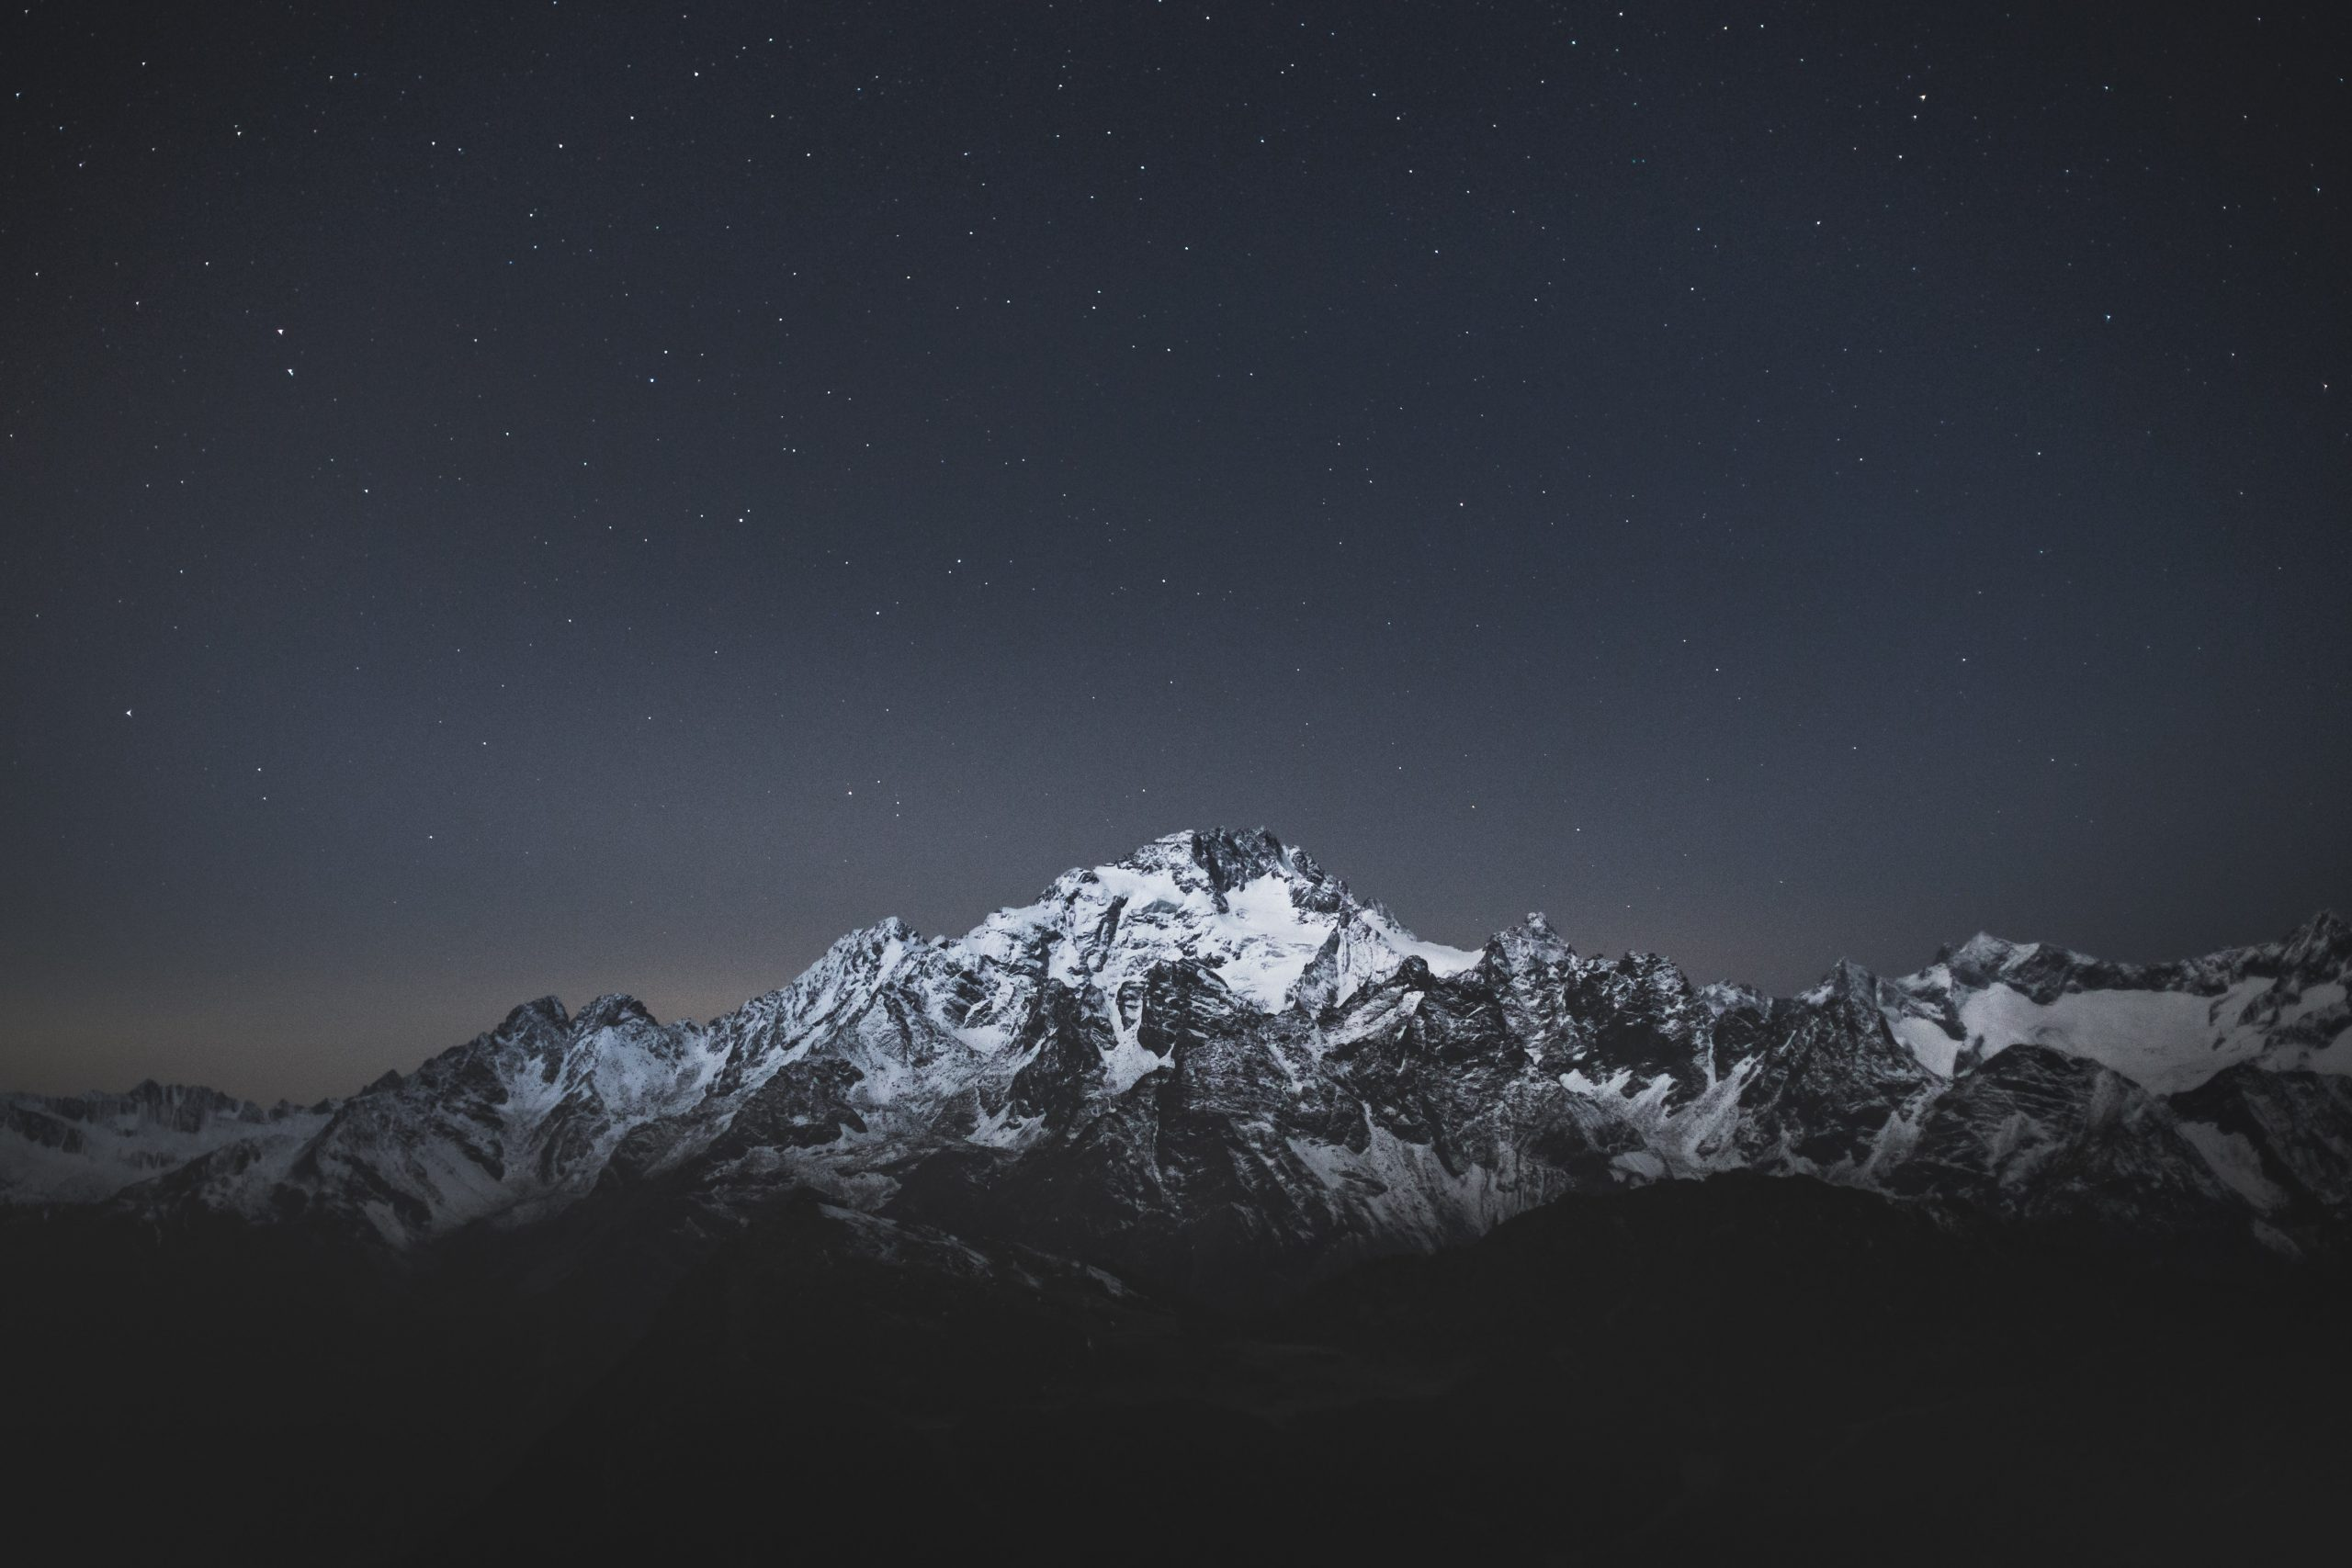 snow covered mountain under blue sky during night time